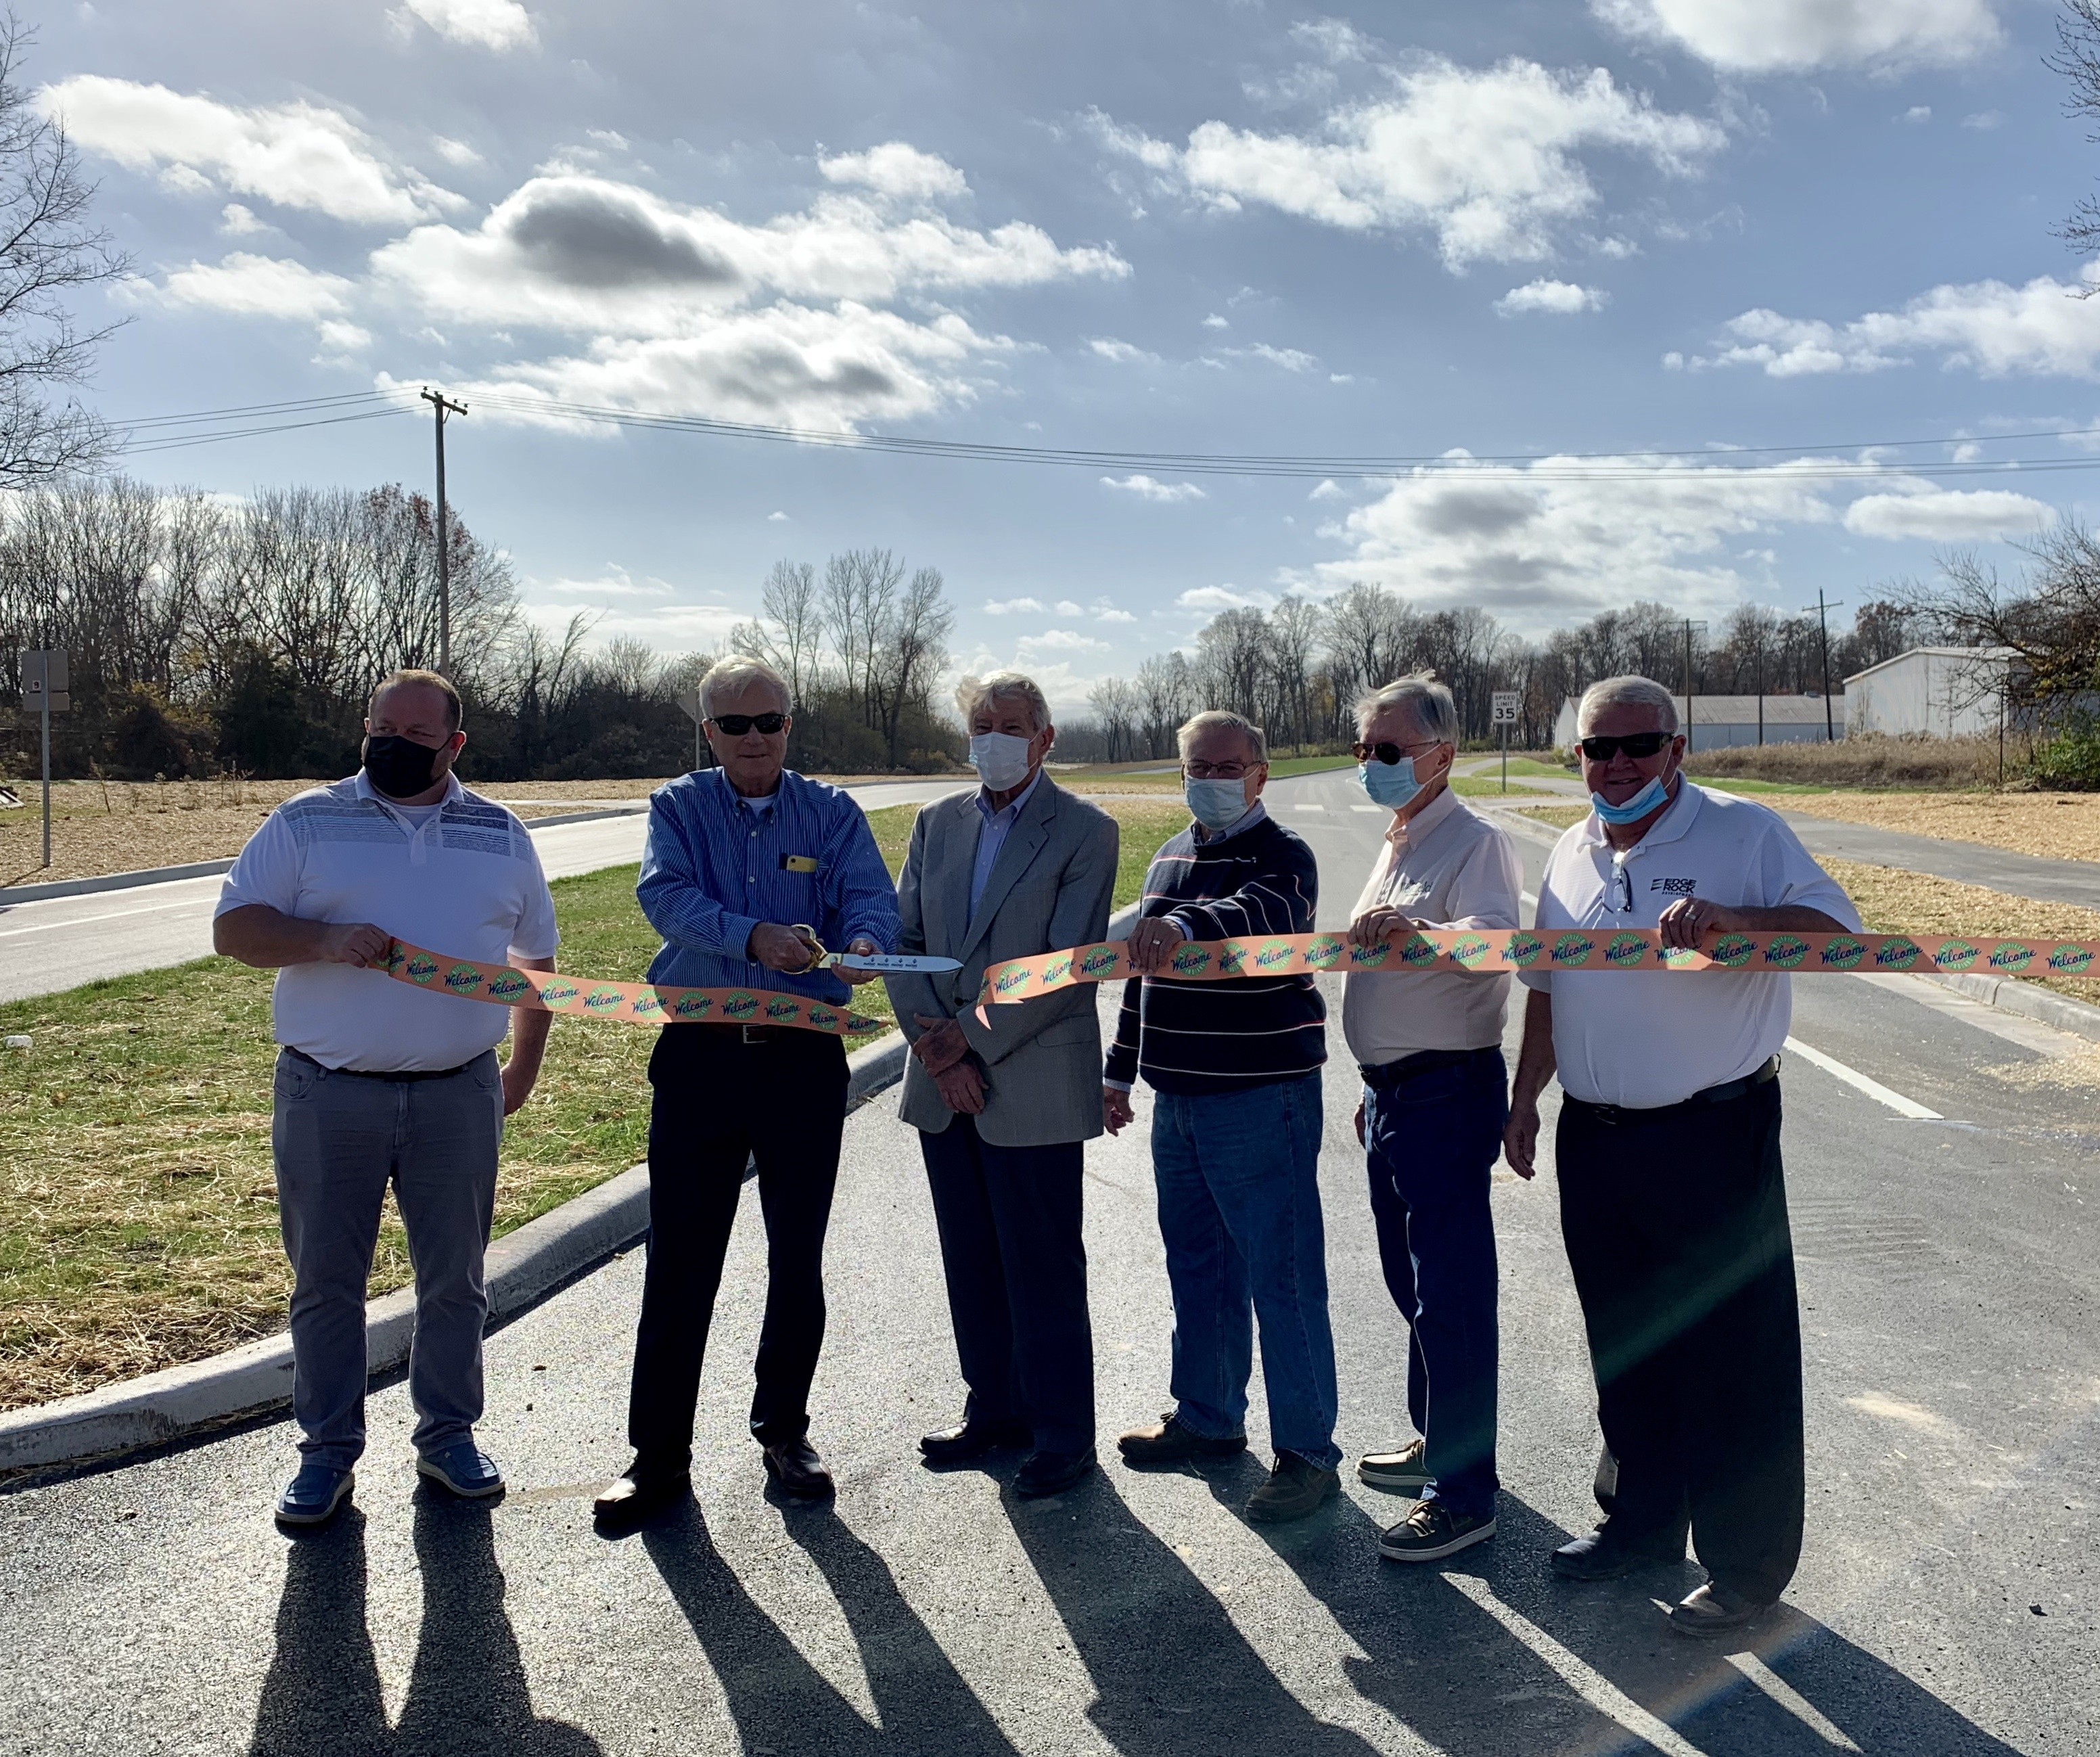 Photo for: NEWS RELEASE: City of Westfield Opens New Road to Improve Connectivity